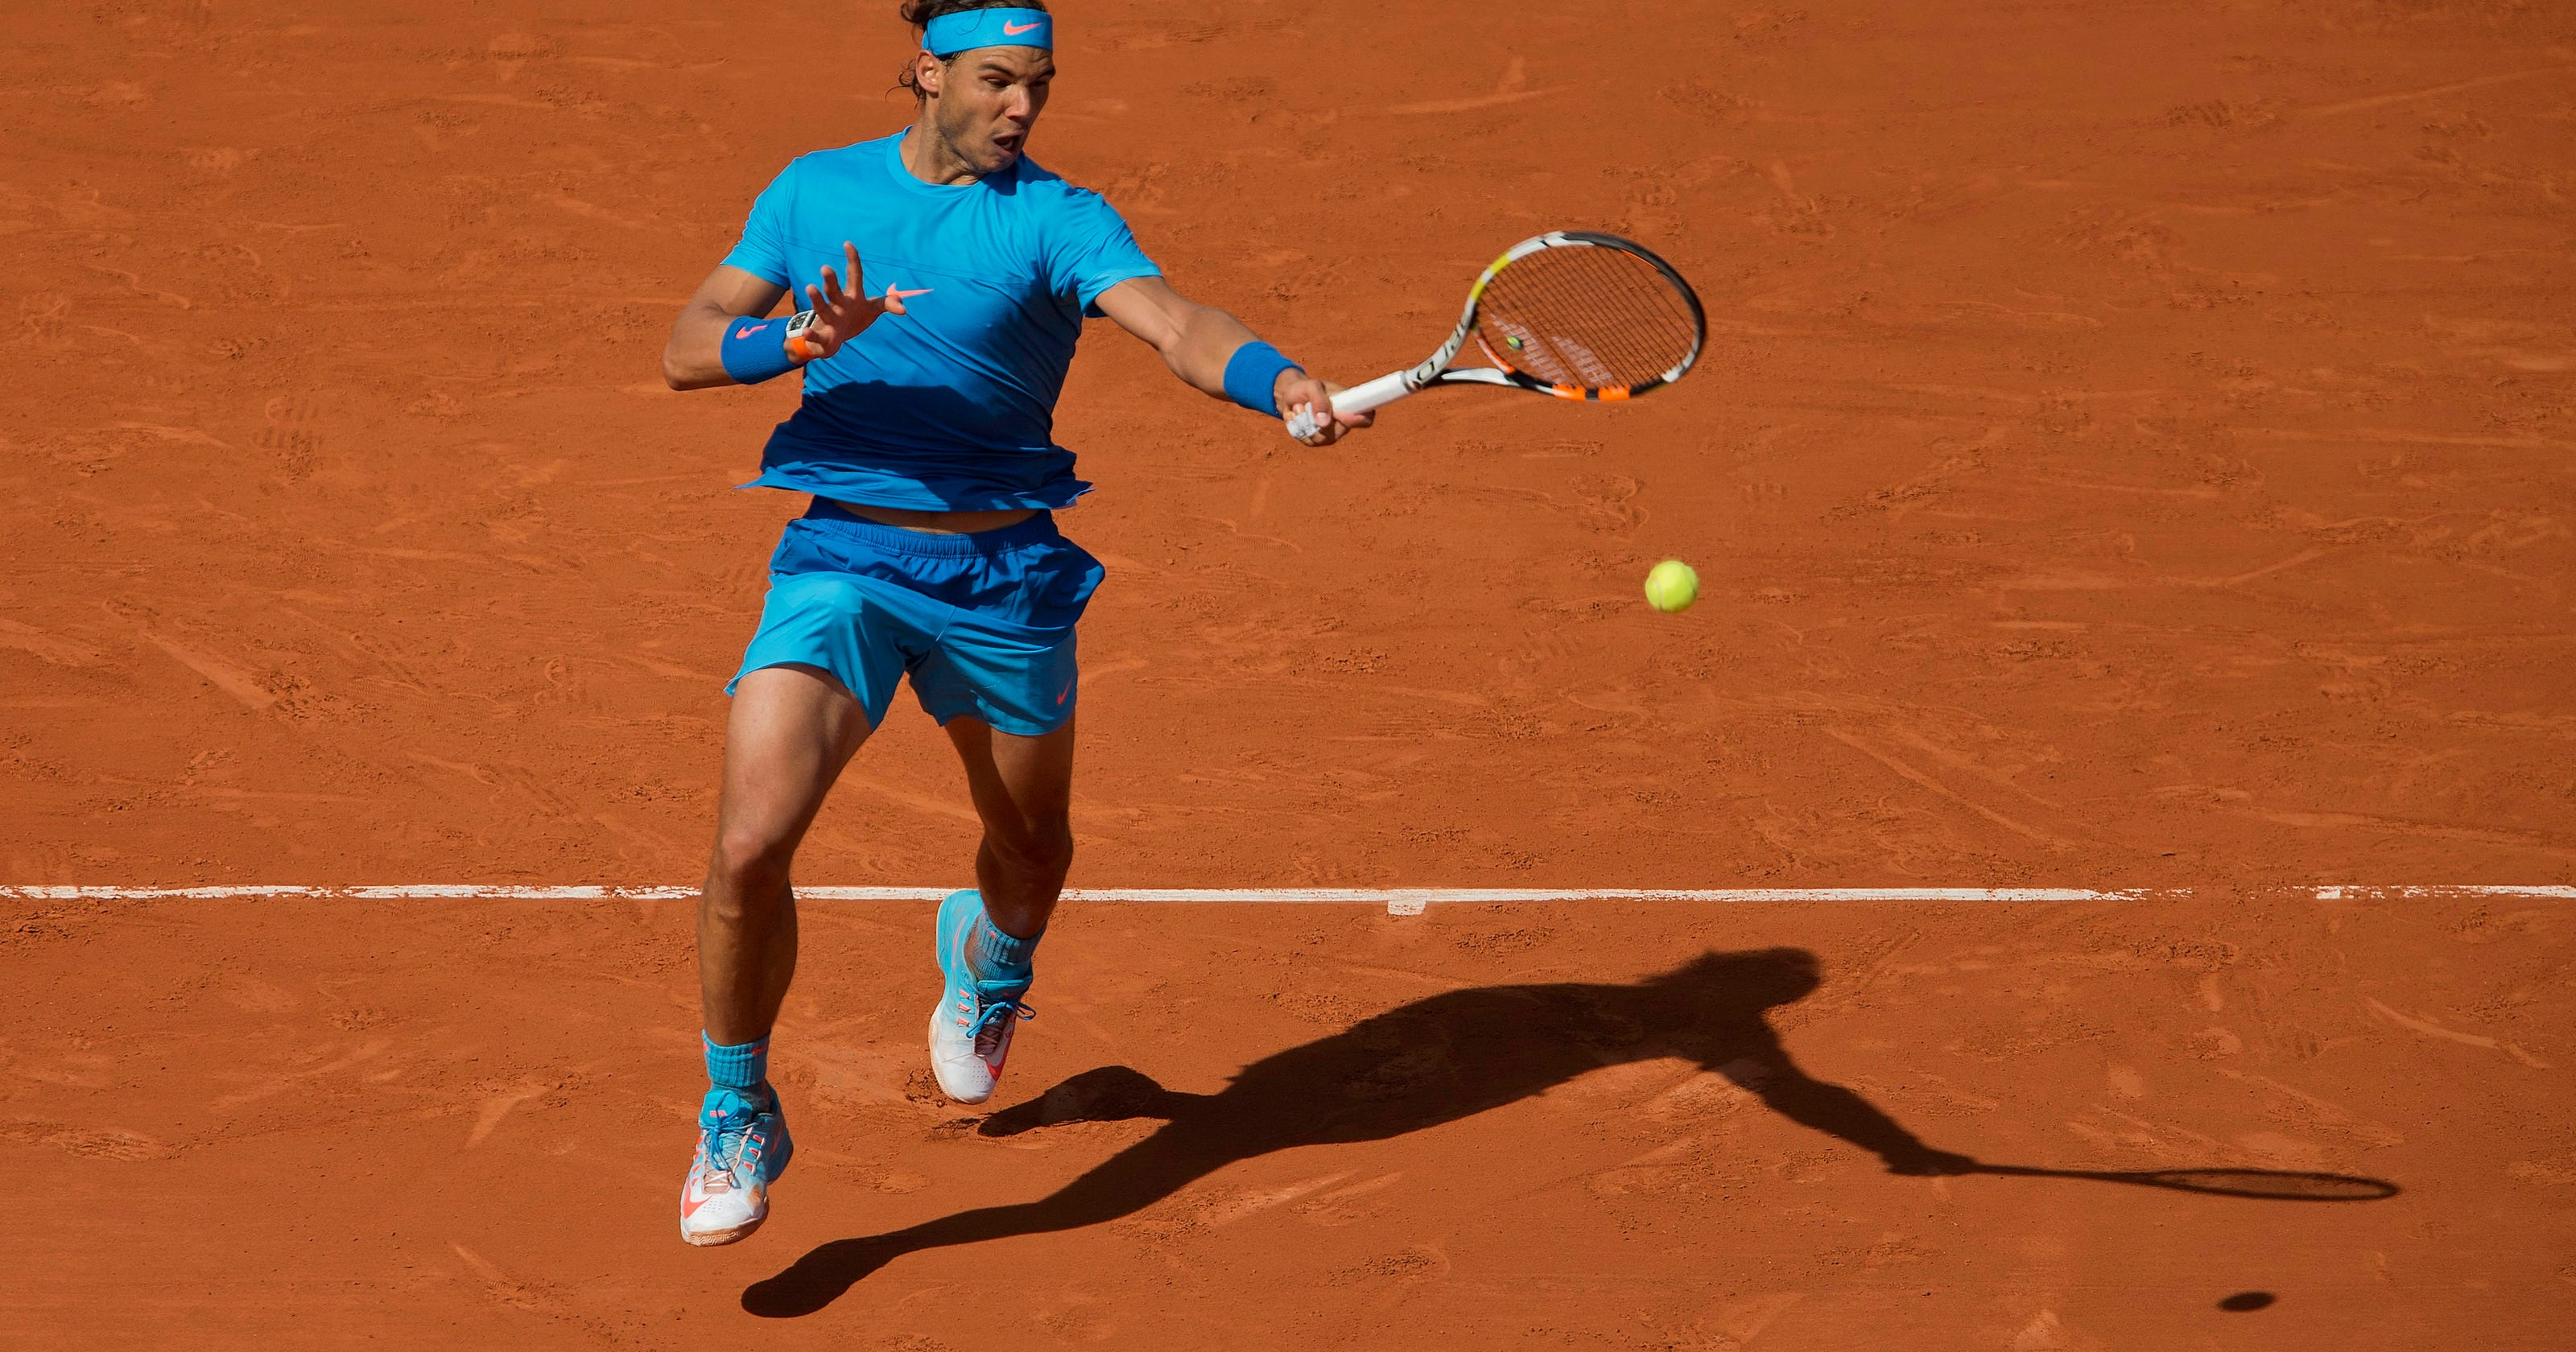 a40d7112a Wildly varied conditions on clay are part of game at French Open